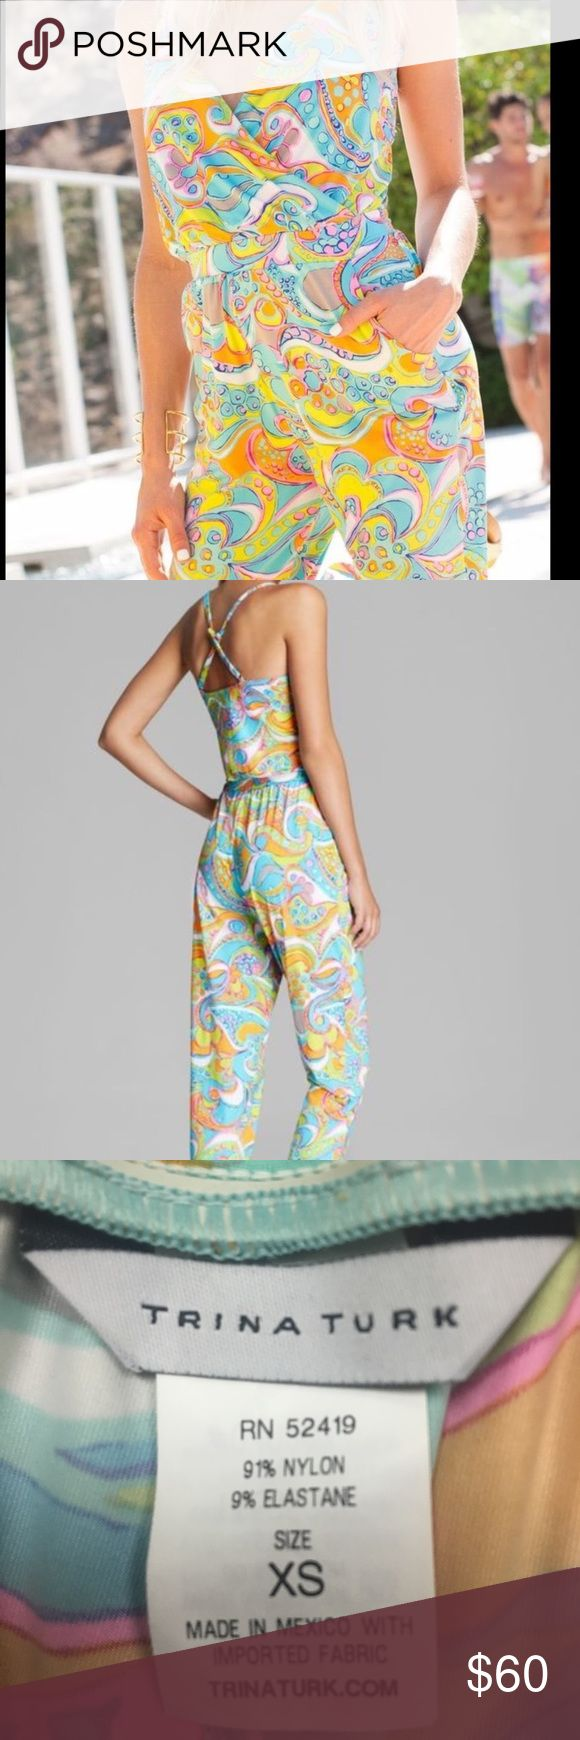 Trina Turk Jumpsuit Adjustable should straps that crisscross in the back.  Elastic high waist and elastic around ankle.  Never worn, purchased for vacation and never used. 91% nylon, 9% elastane. Trina Turk Pants Jumpsuits & Rompers